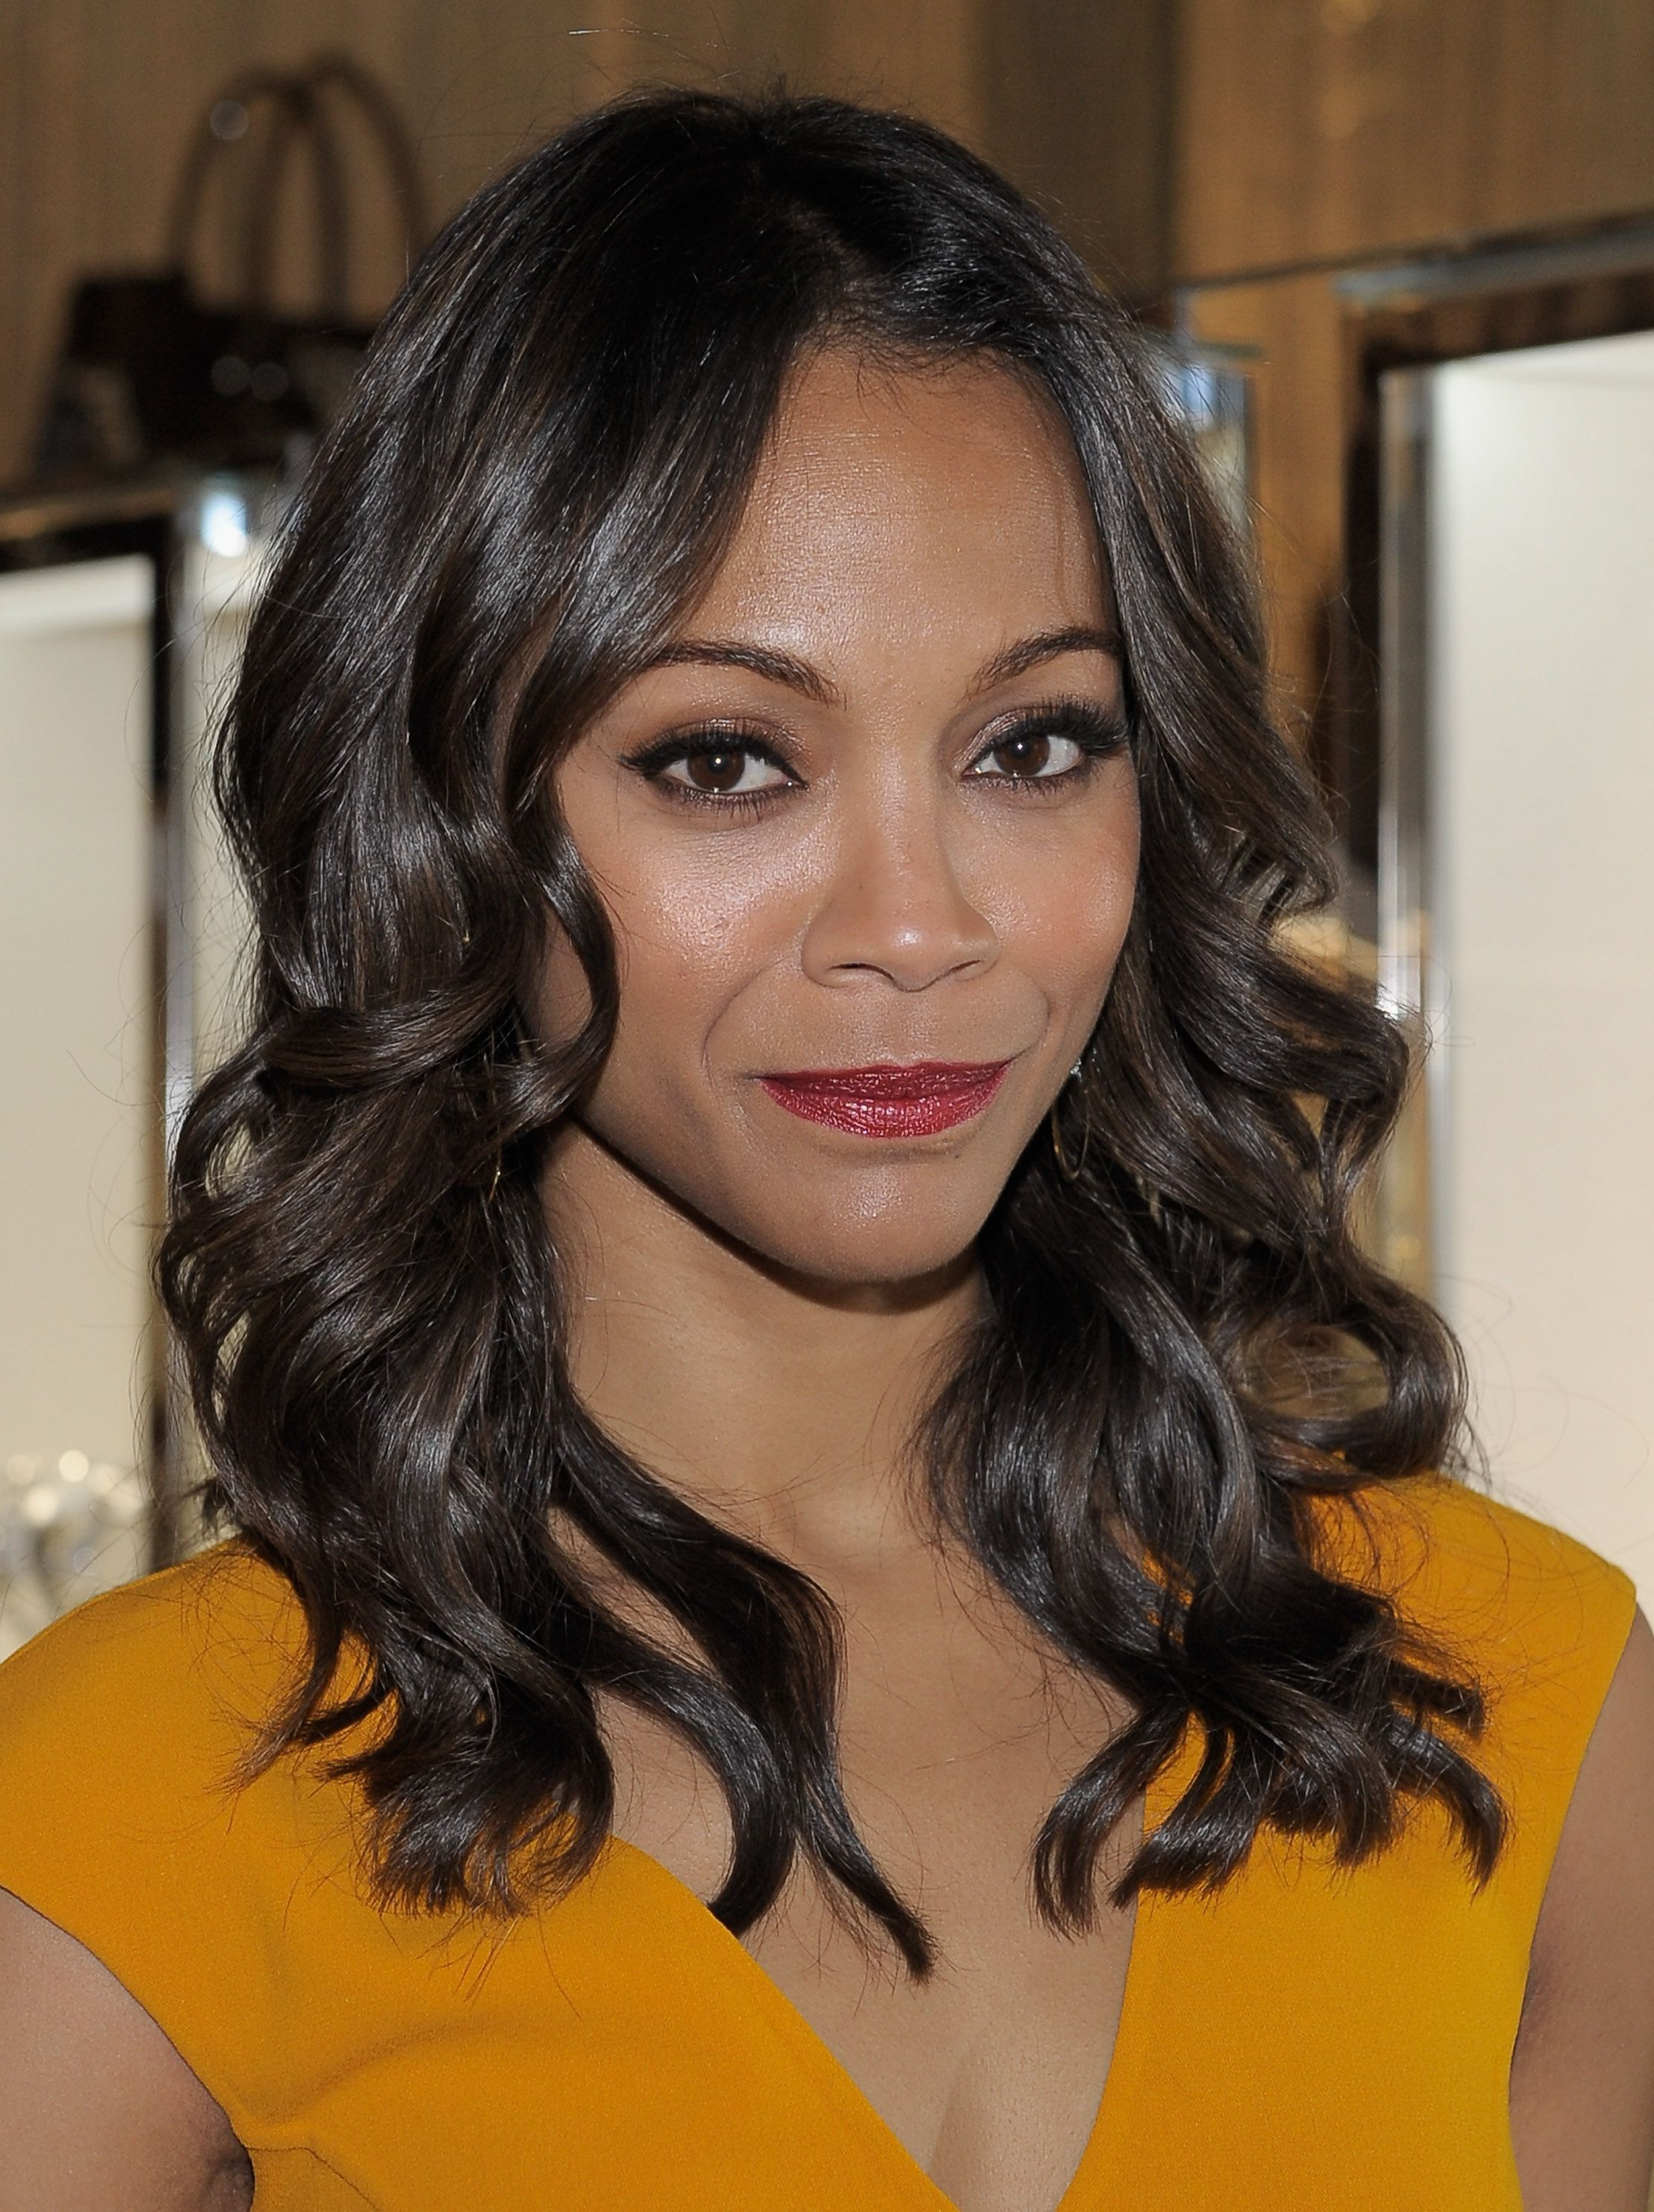 Newest Black Hairstyles Medium Haircuts Regarding Curly Hairstyles 2019 – 40+ Styles For Every Type Of Curl (View 13 of 20)